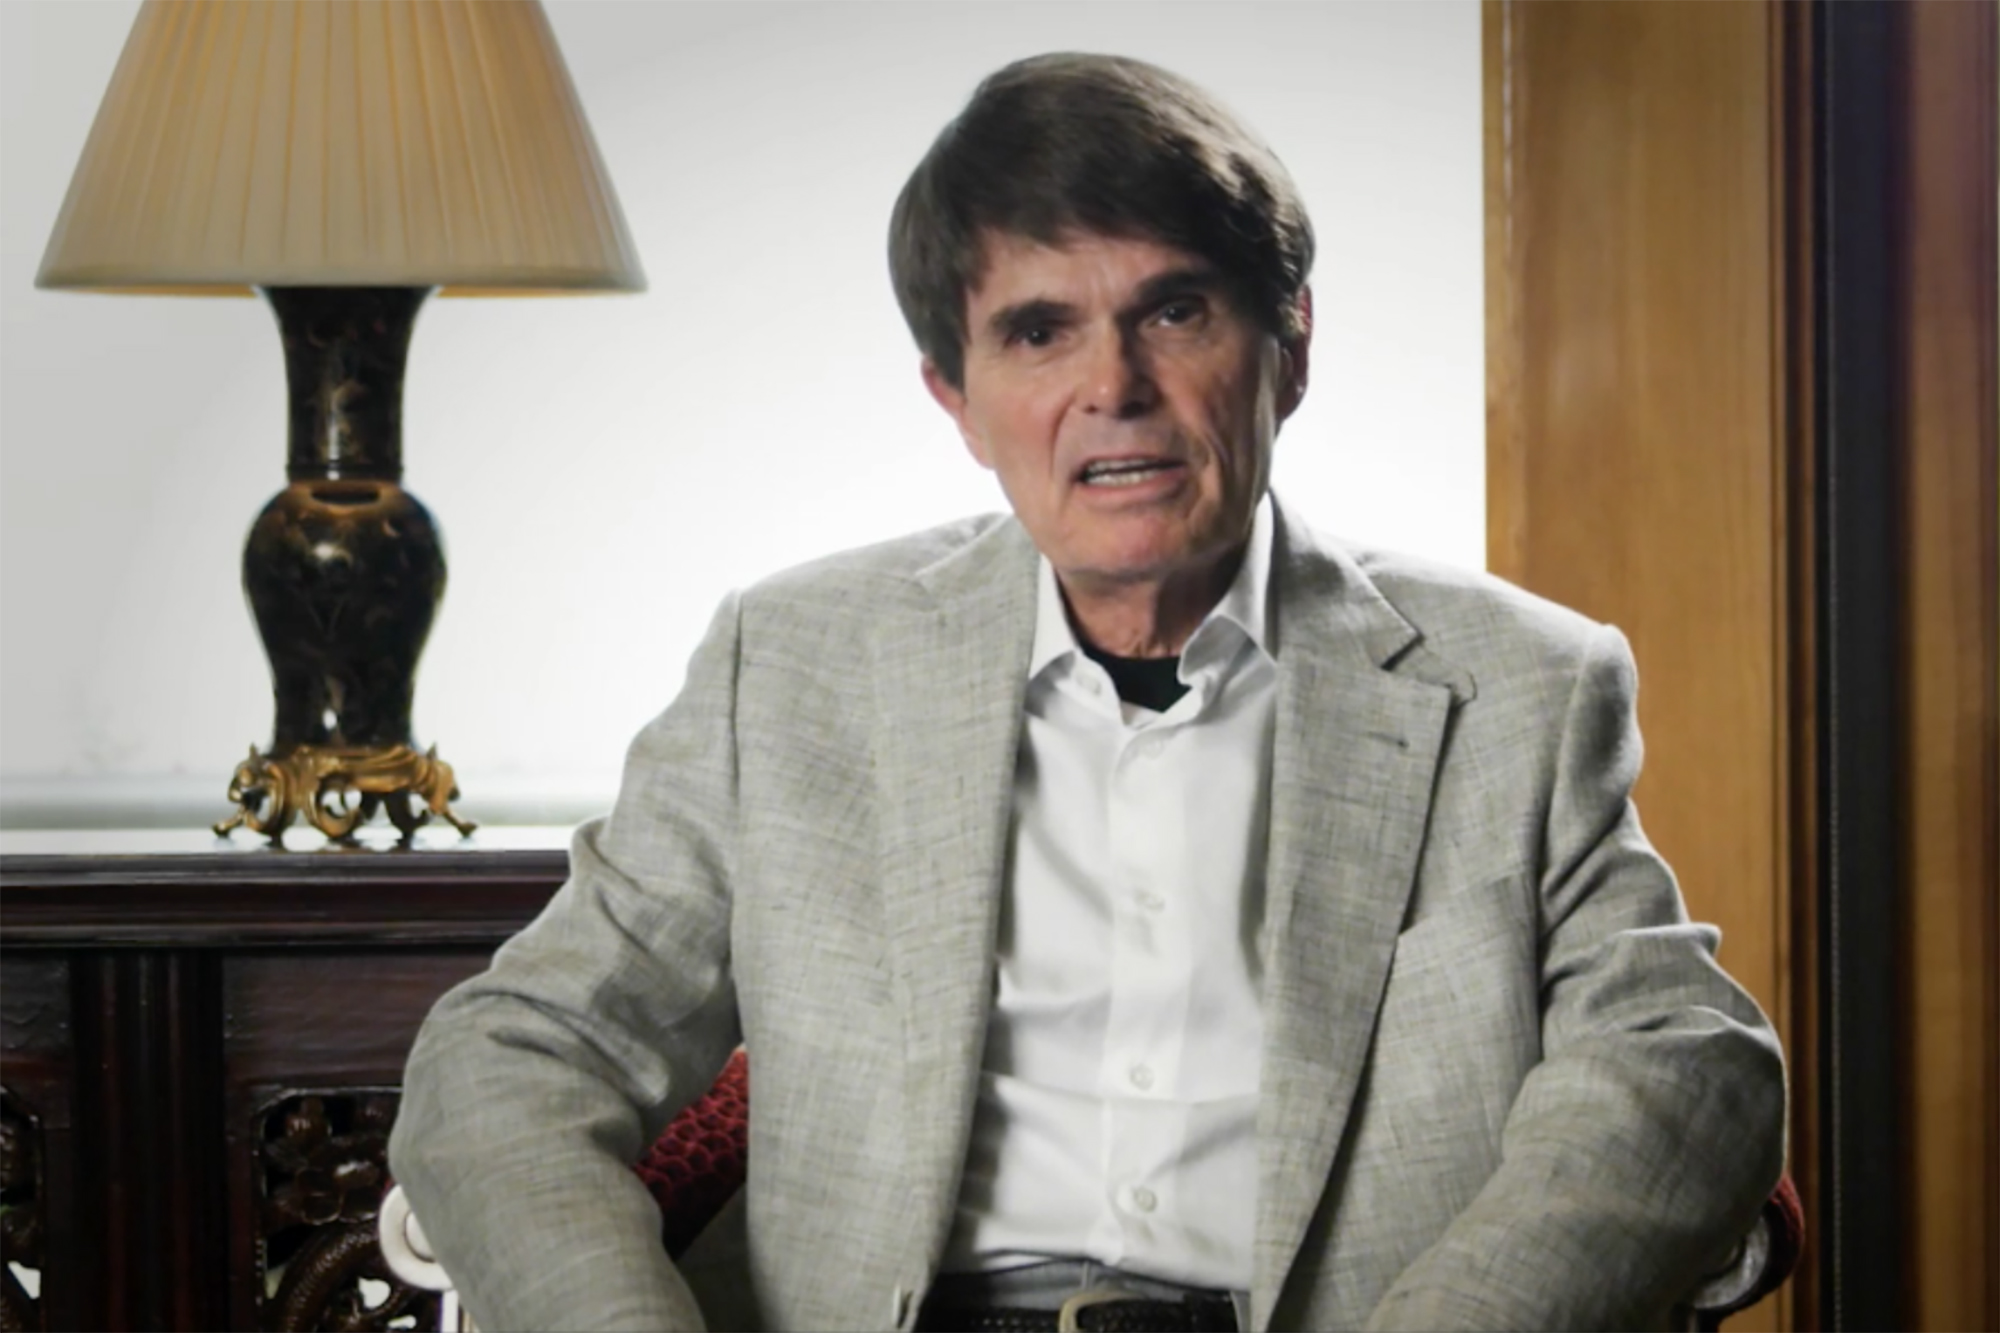 Dean Koontz Amazon Publishing Deal